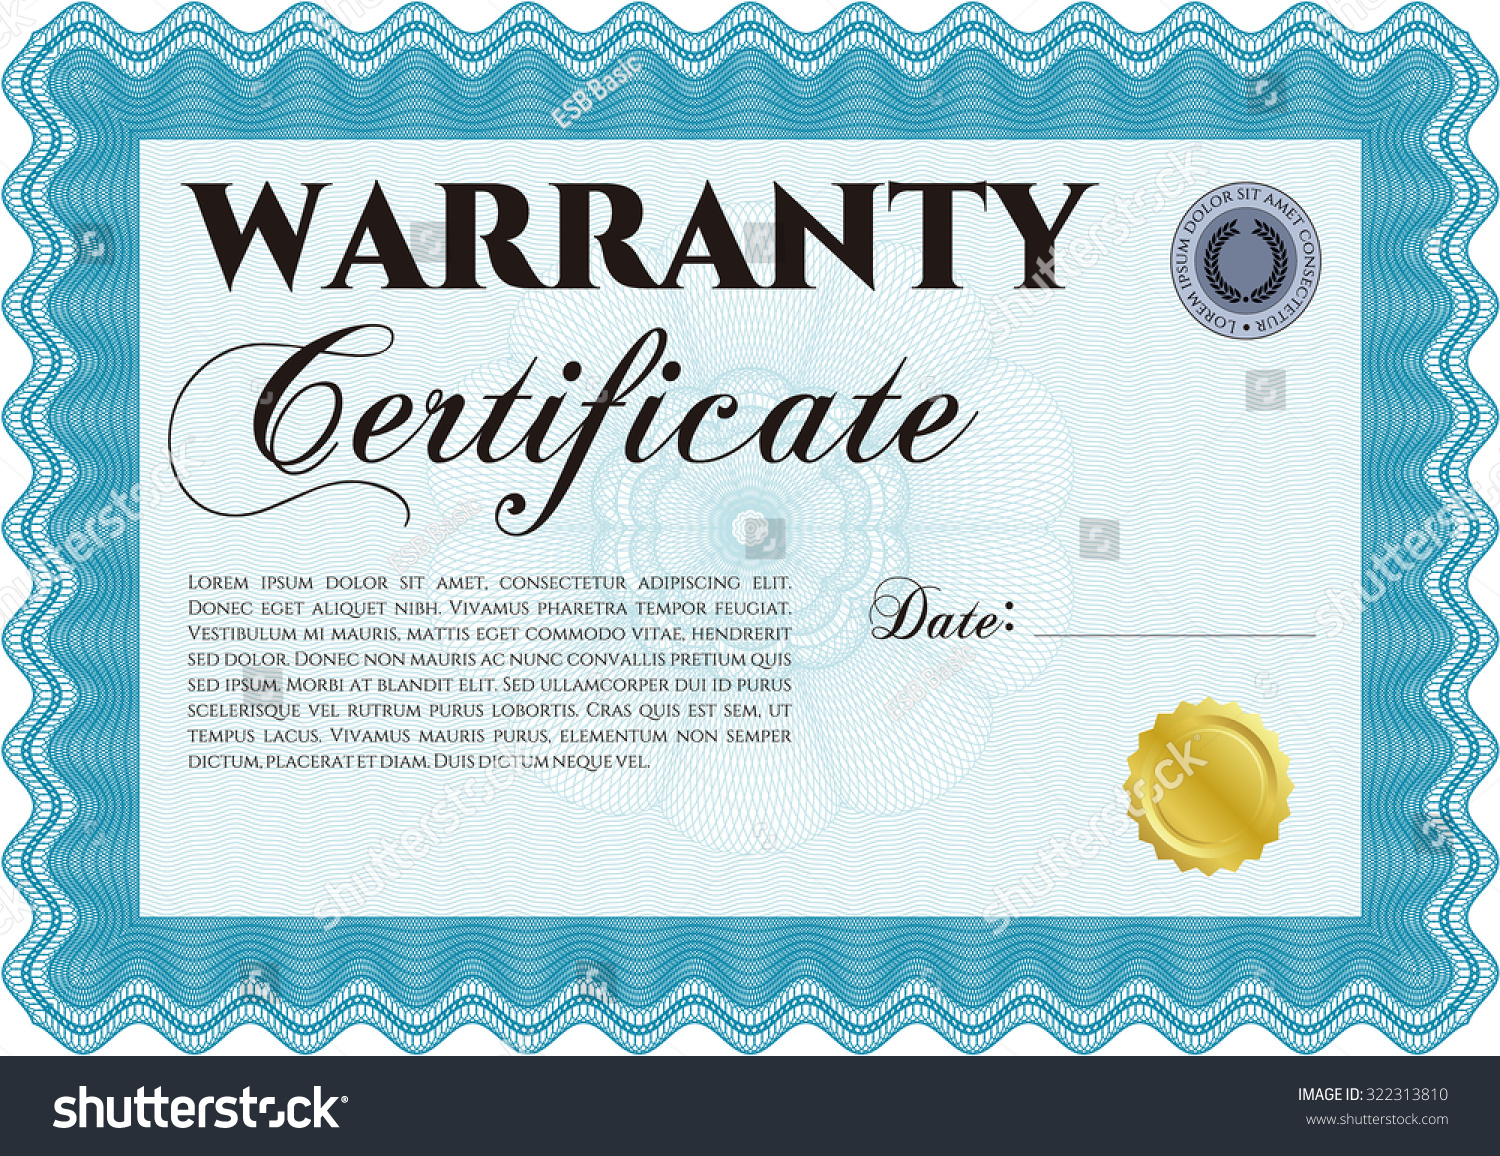 Warranty certificate template complex frame design stock vector warranty certificate template complex frame design easy to print perfect style yadclub Image collections